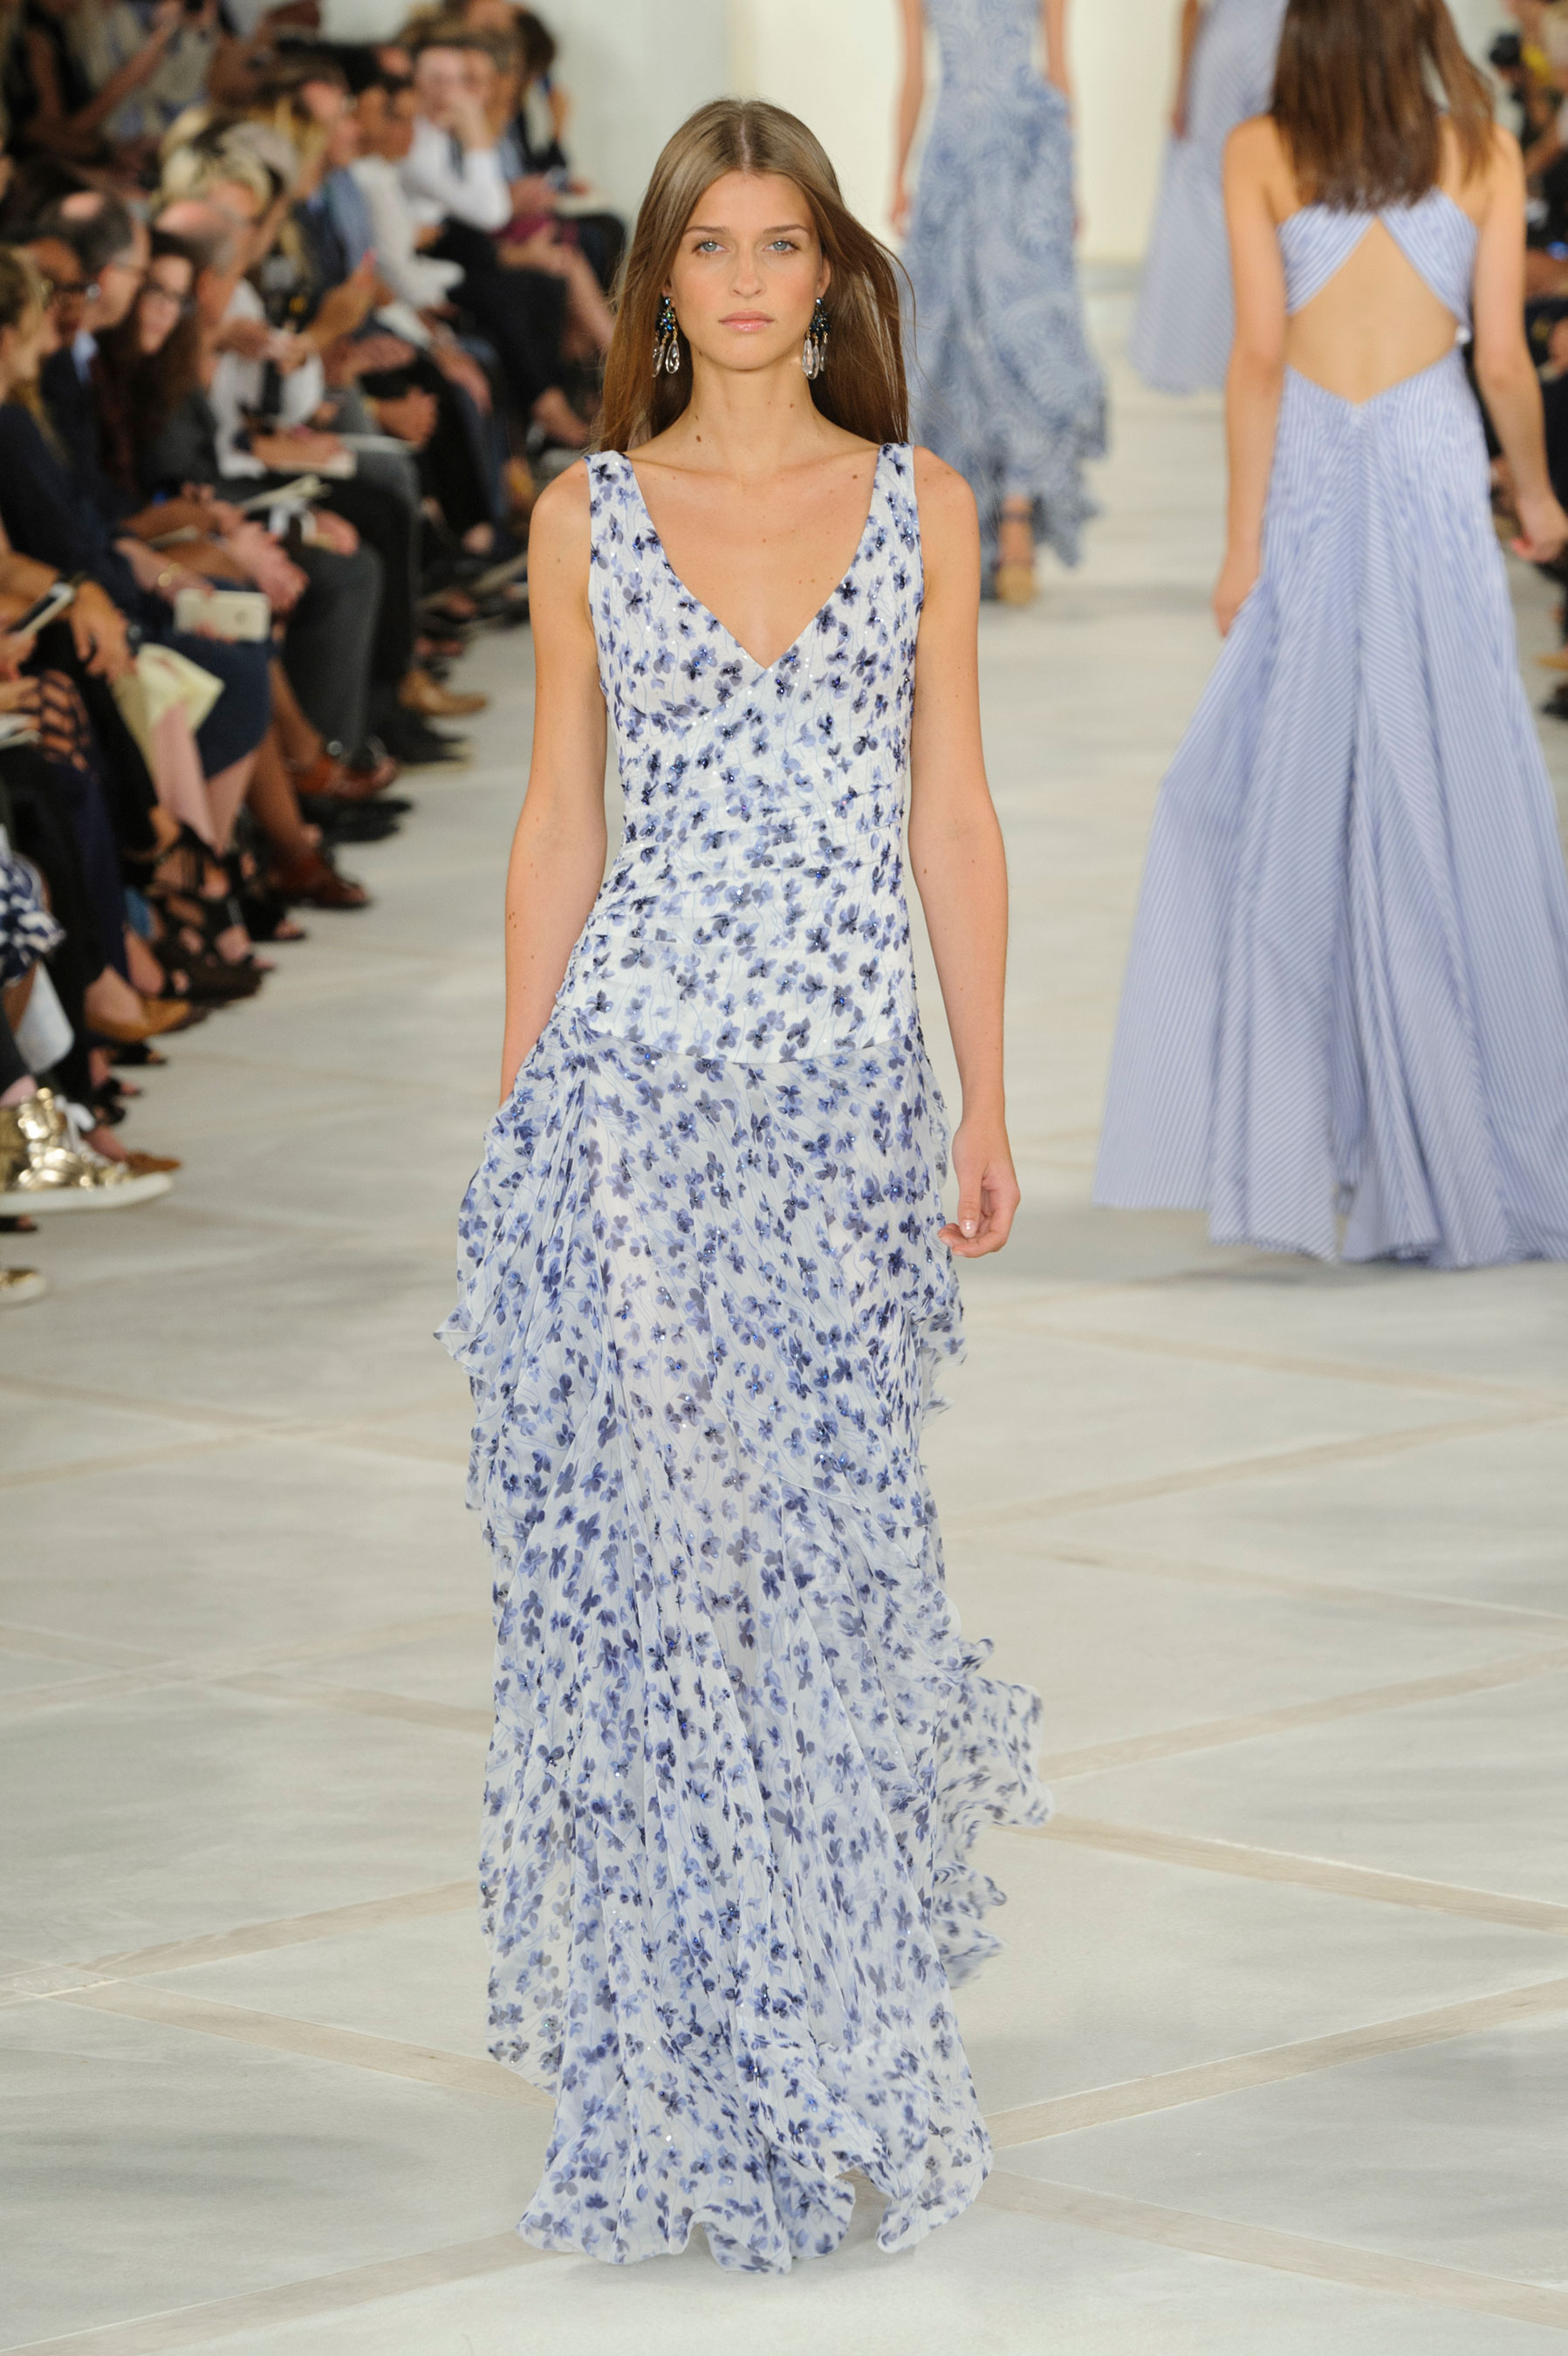 44 Of The Prettiest Dresses From New York Fashion Week